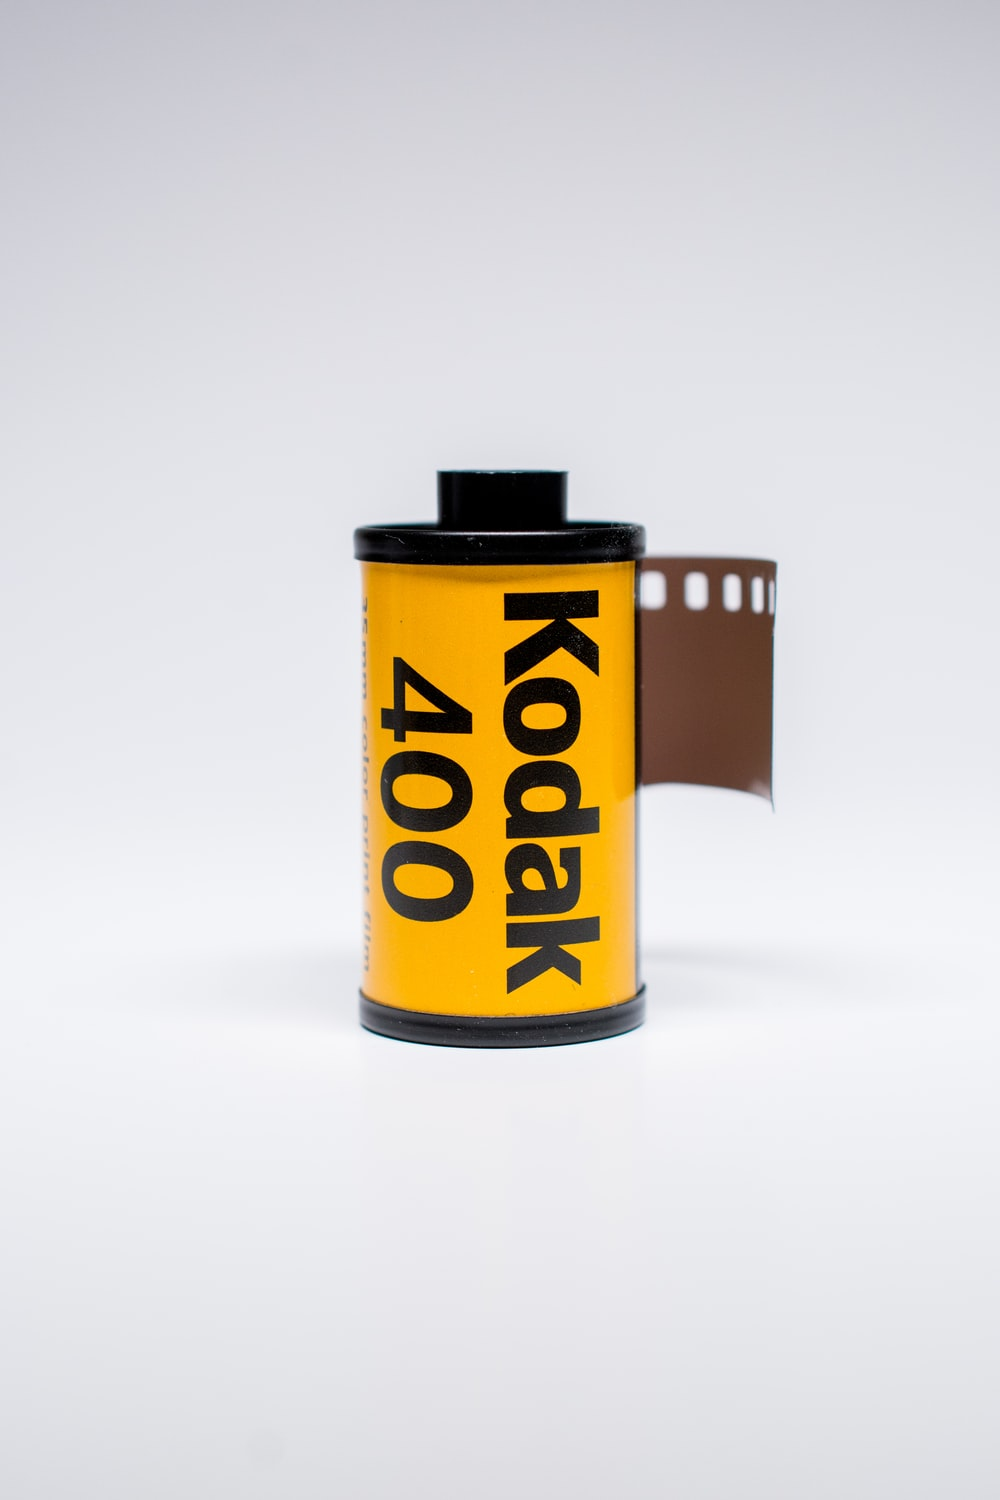 black and yellow can on white table